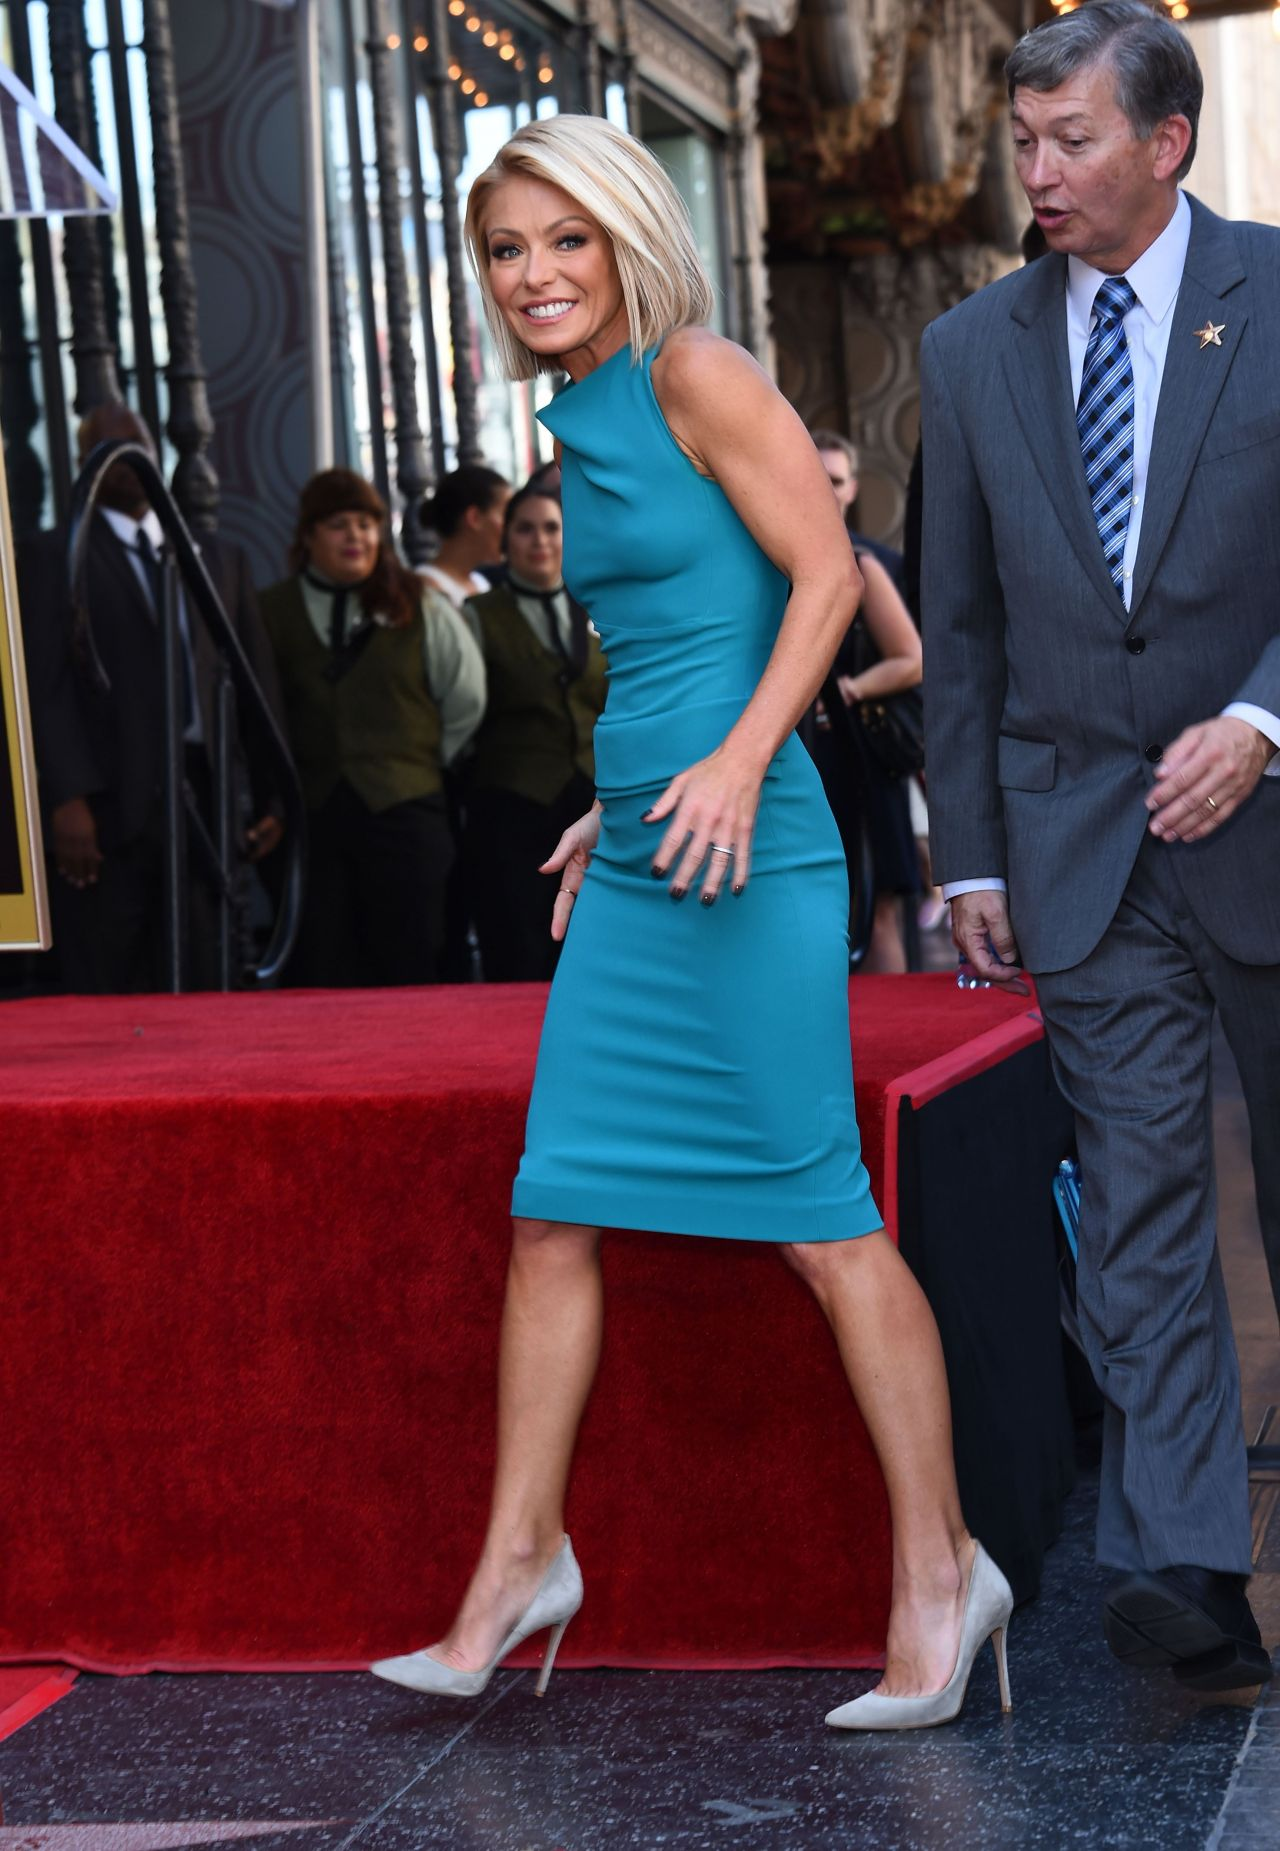 Kelly Ripa Receives Her Star On The Hollywood Walk Of